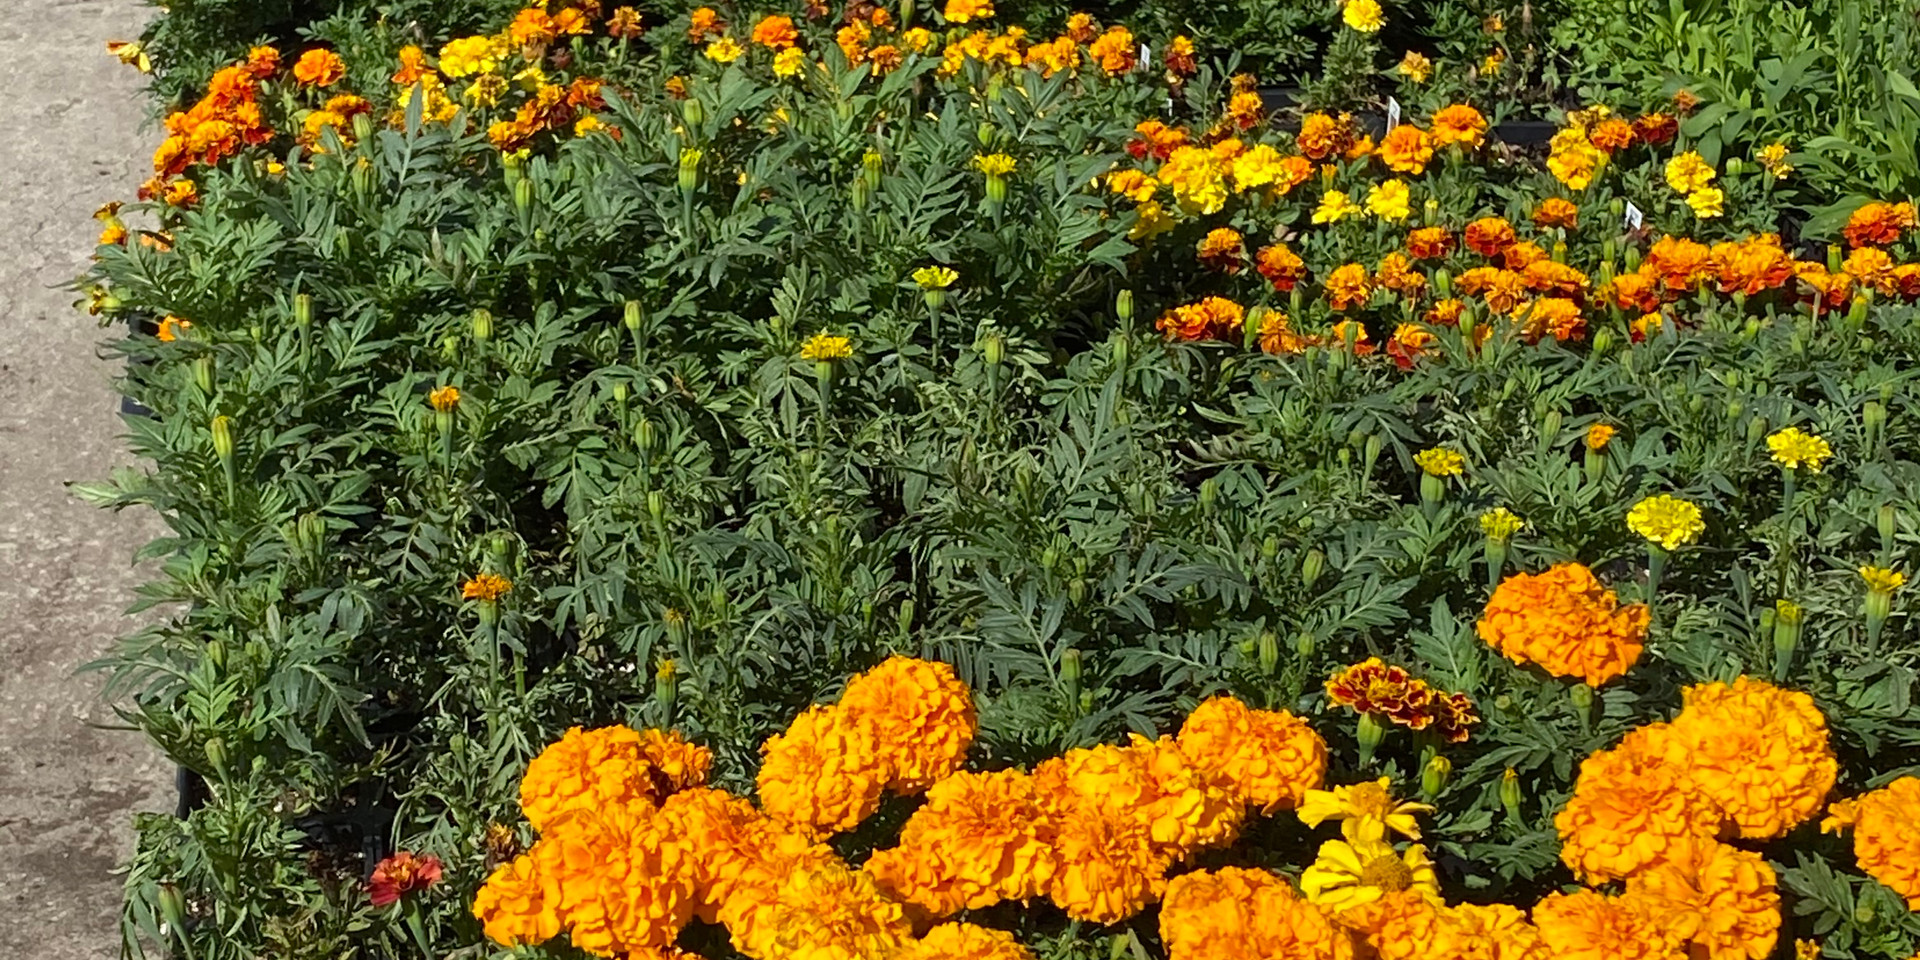 LOTS of marigolds - 5 varieties, single and pompom options!